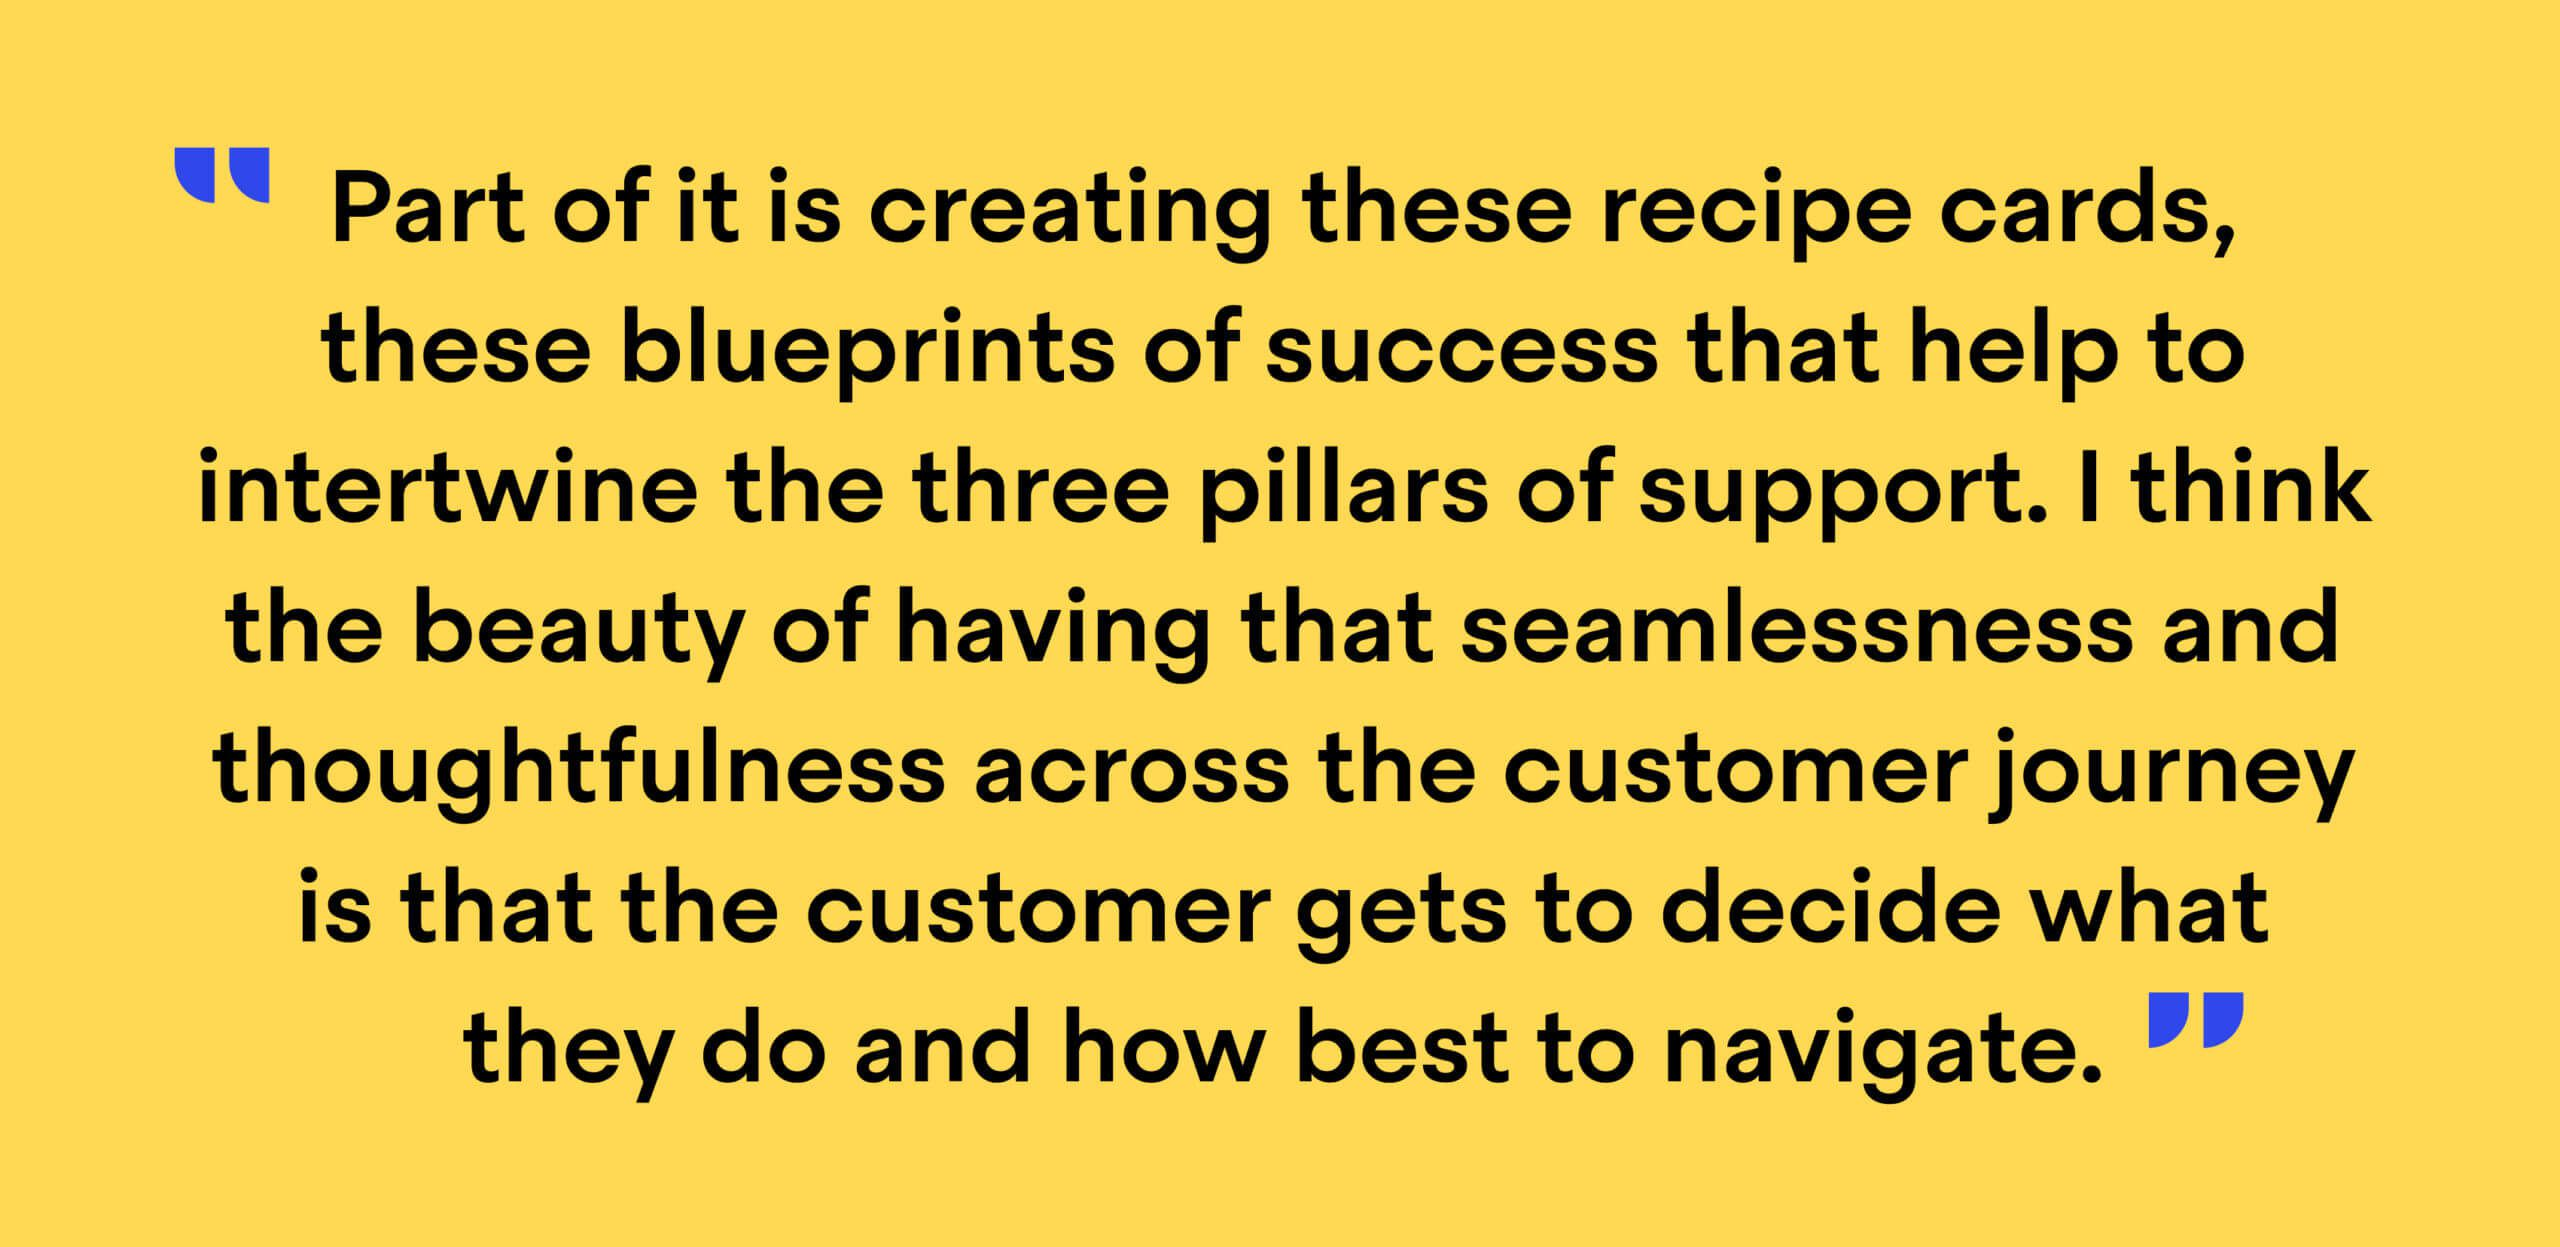 """Quote from Christine Werner, Senior Director of Customer Success at Typeform: """"Part of it is creating these recipe cards, these blueprints of success that help to intertwine the three pillars of support. I think the beauty of having that seamlessness and thoughtfulness across the customer journey is that the customer gets to decide what they do and how best to navigate."""""""